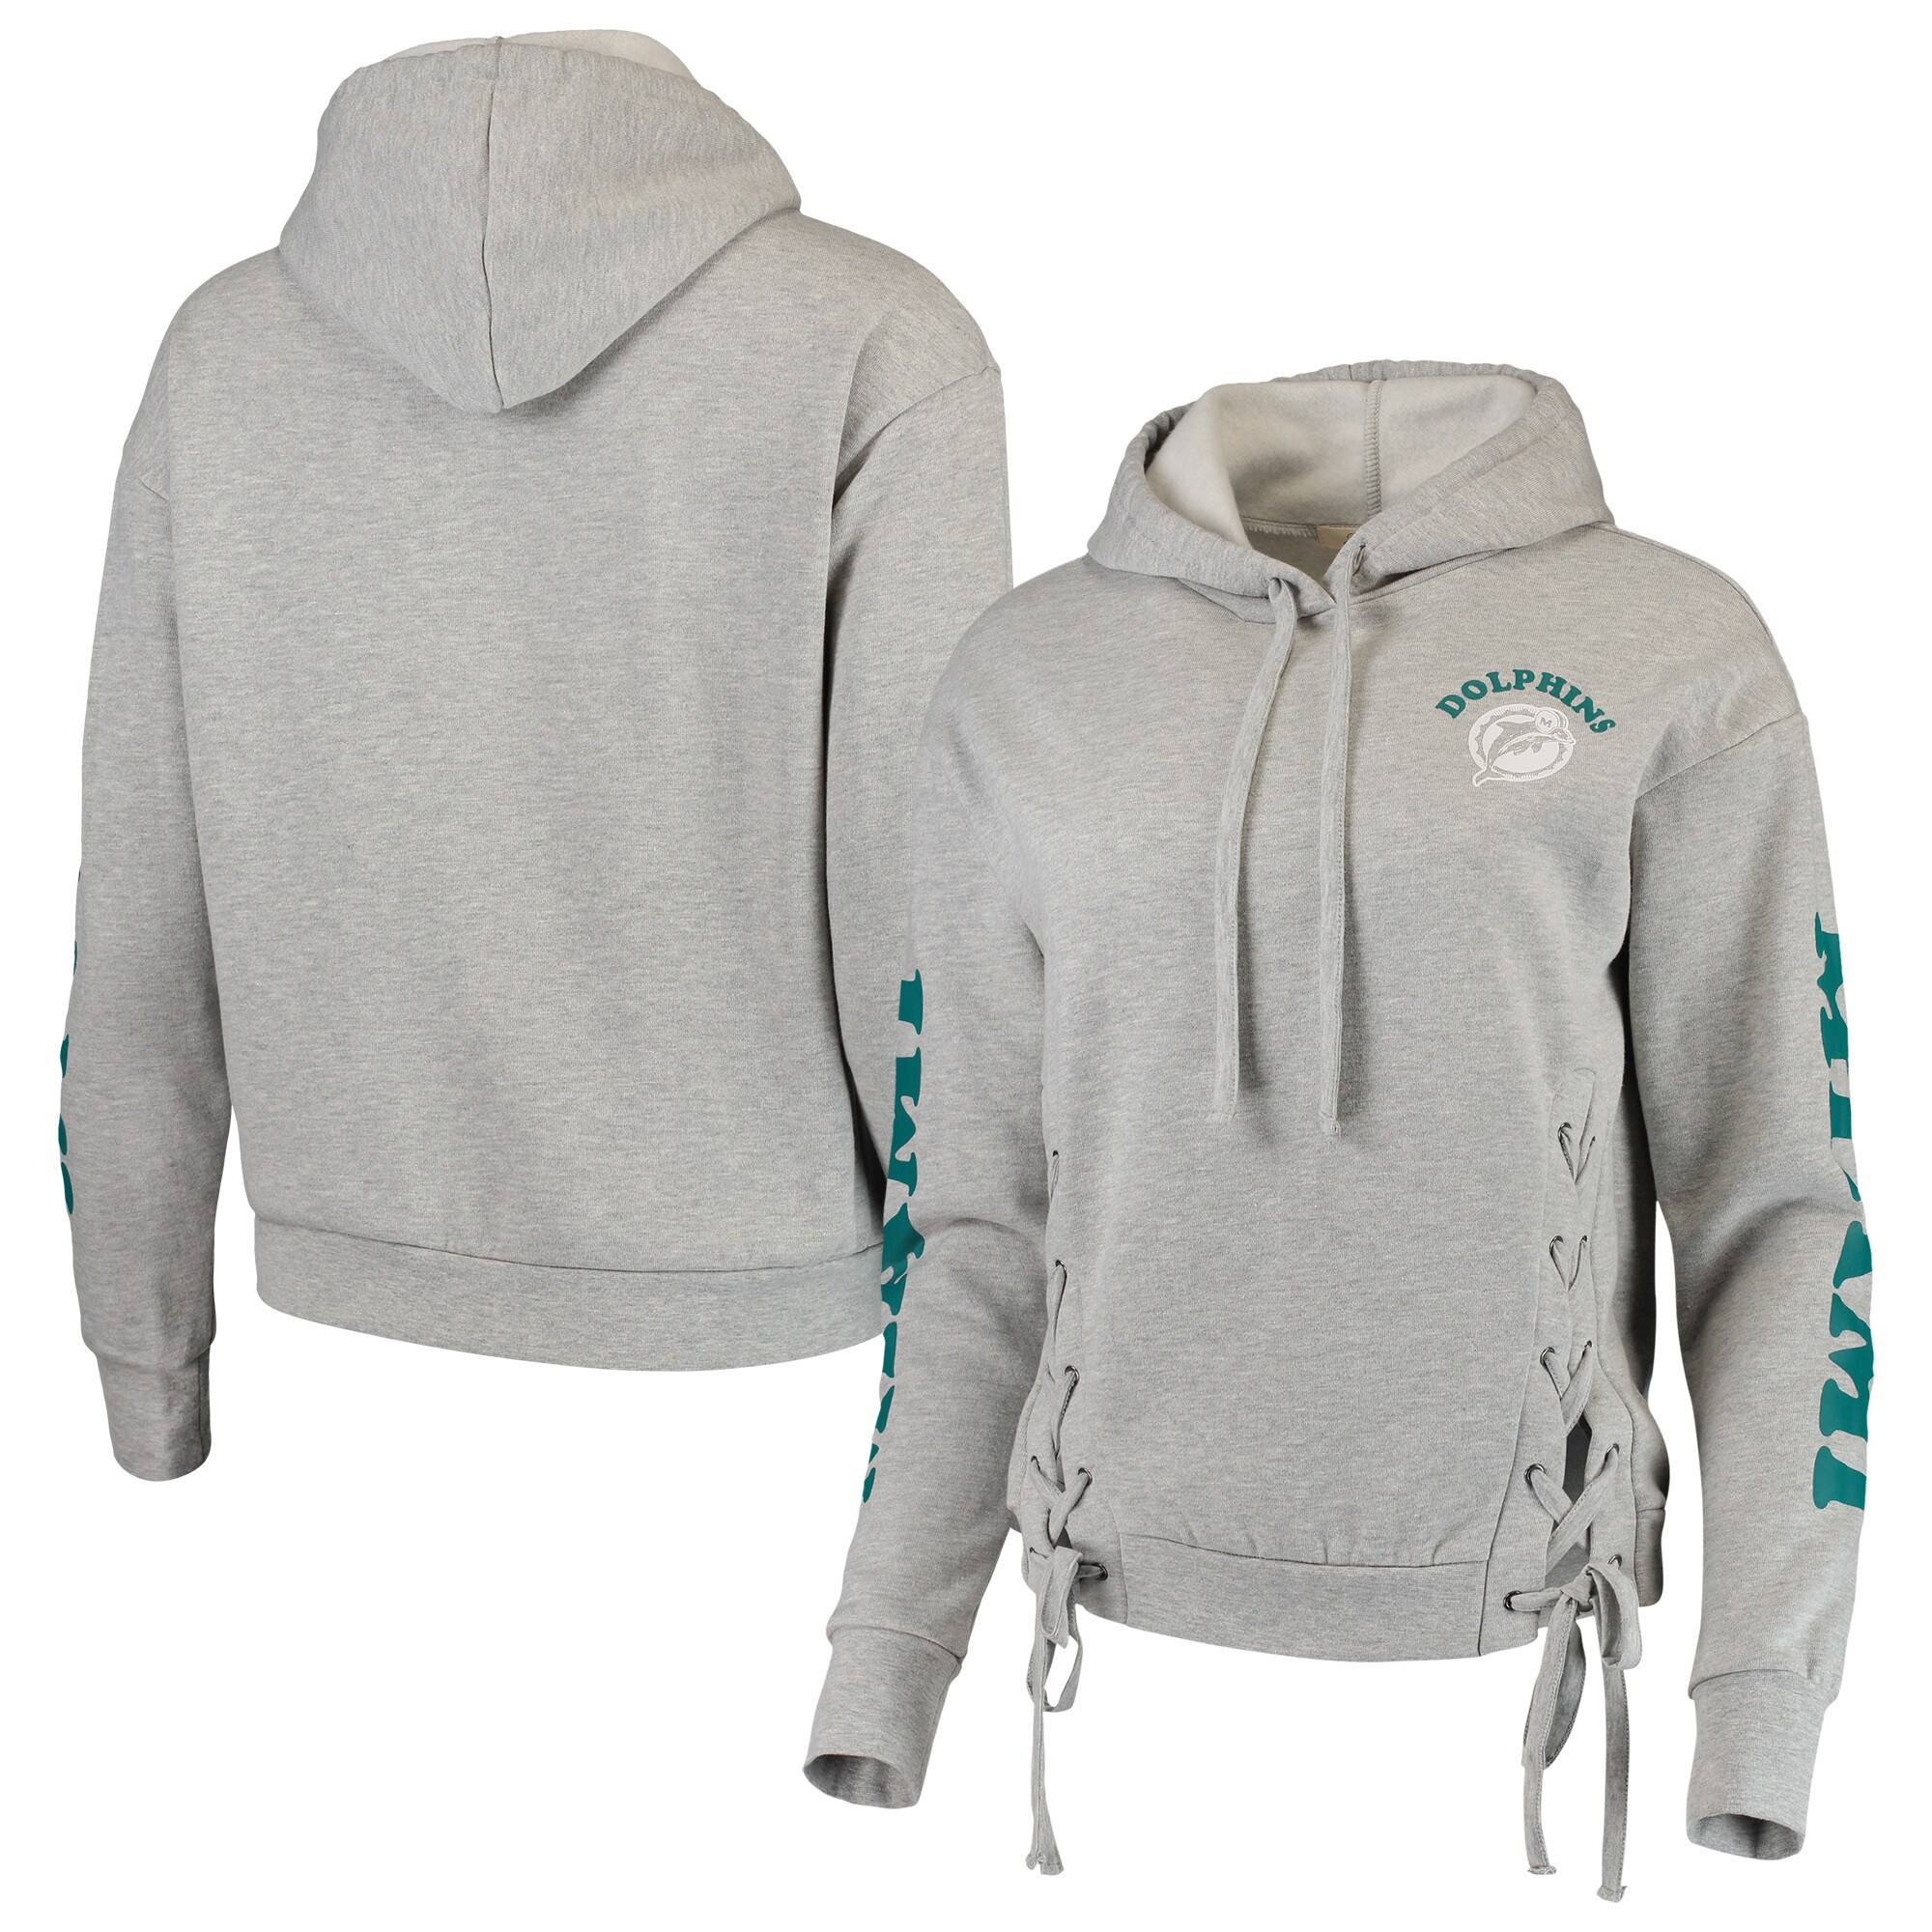 Miami Dolphins Junk Food Women's Fashion Fleece Pullover Hoodie - Heathered Gray